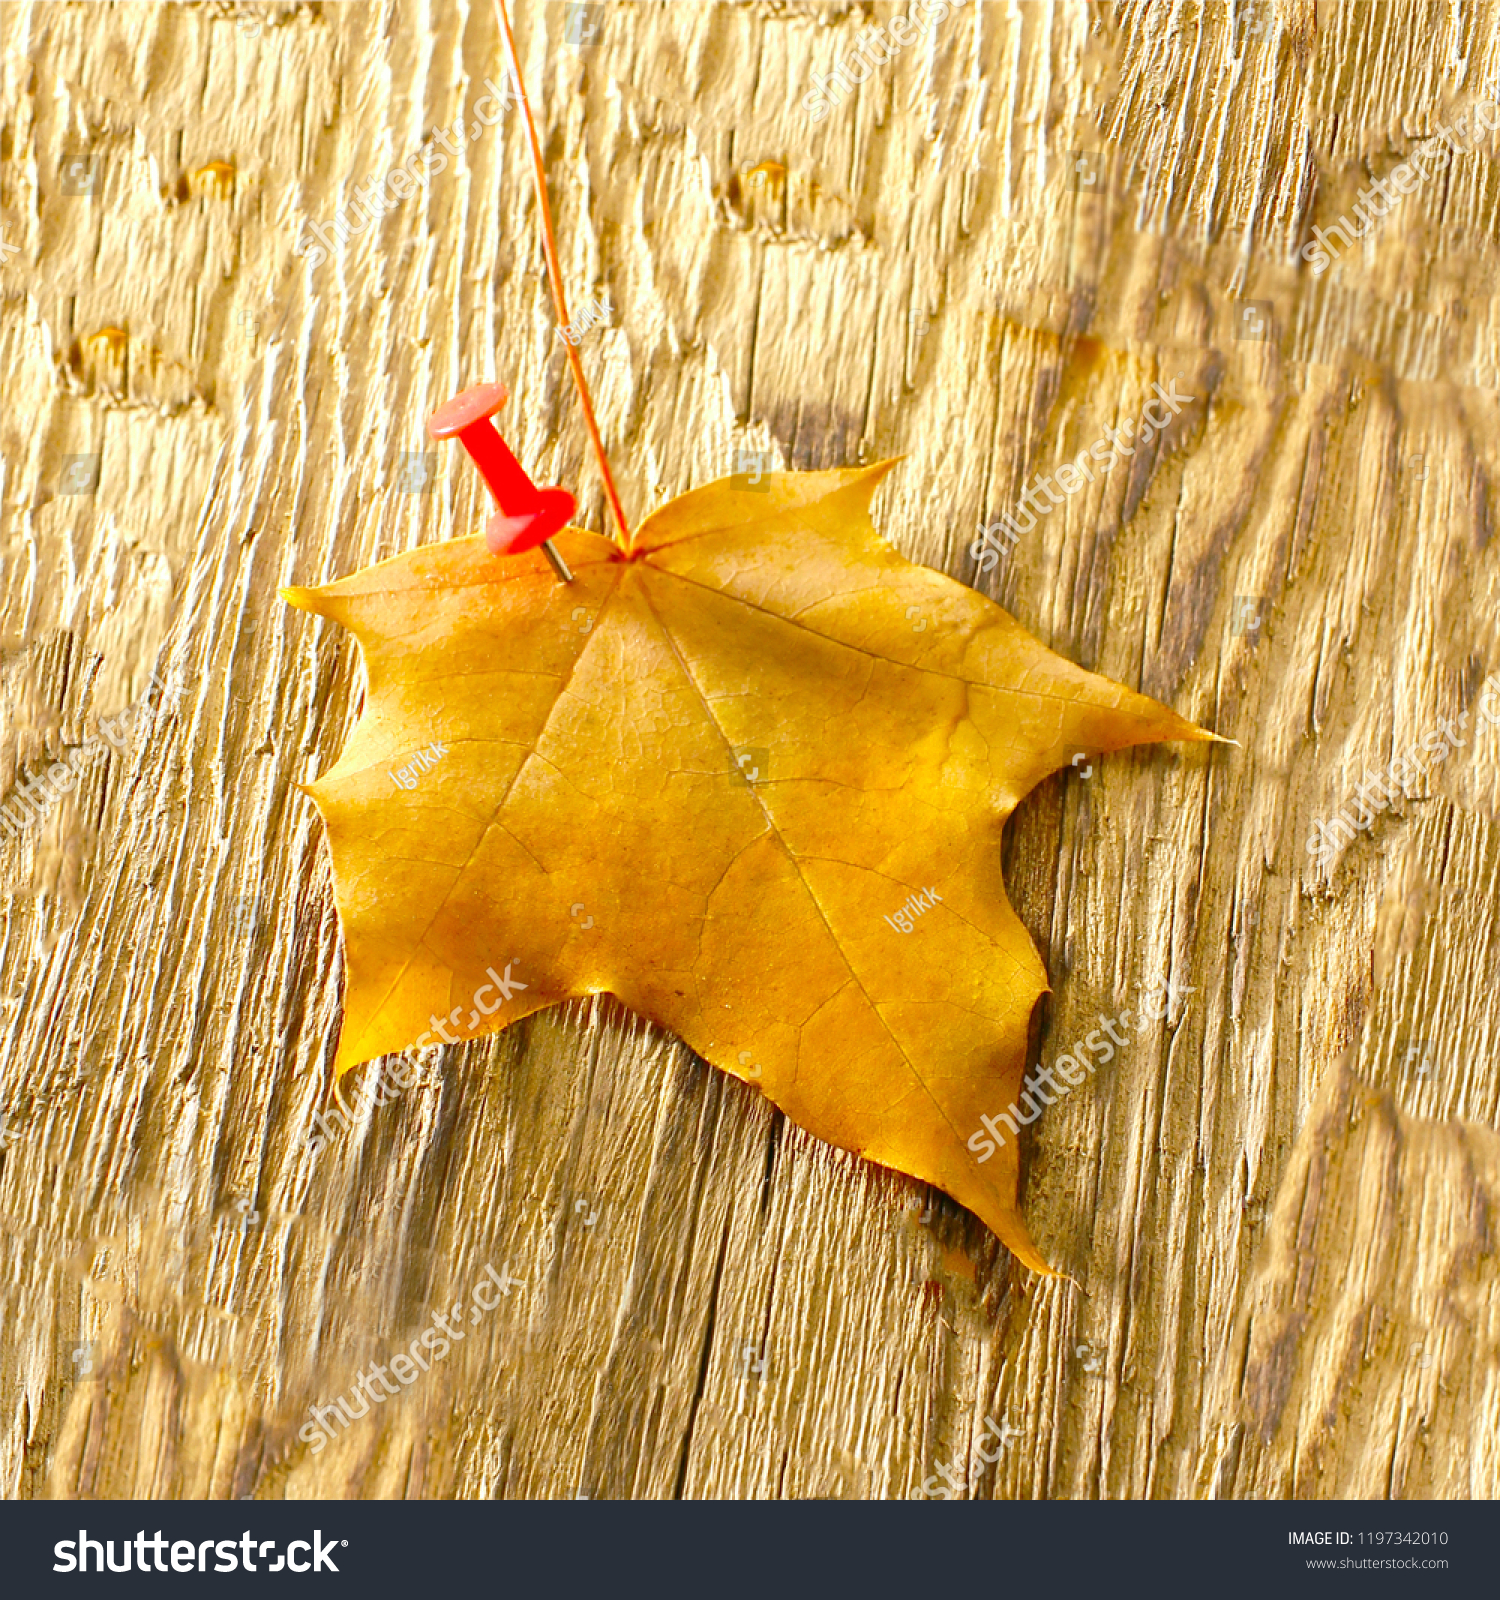 hight resolution of autumn maple leaves clipart on wooden table falling leaves natural background